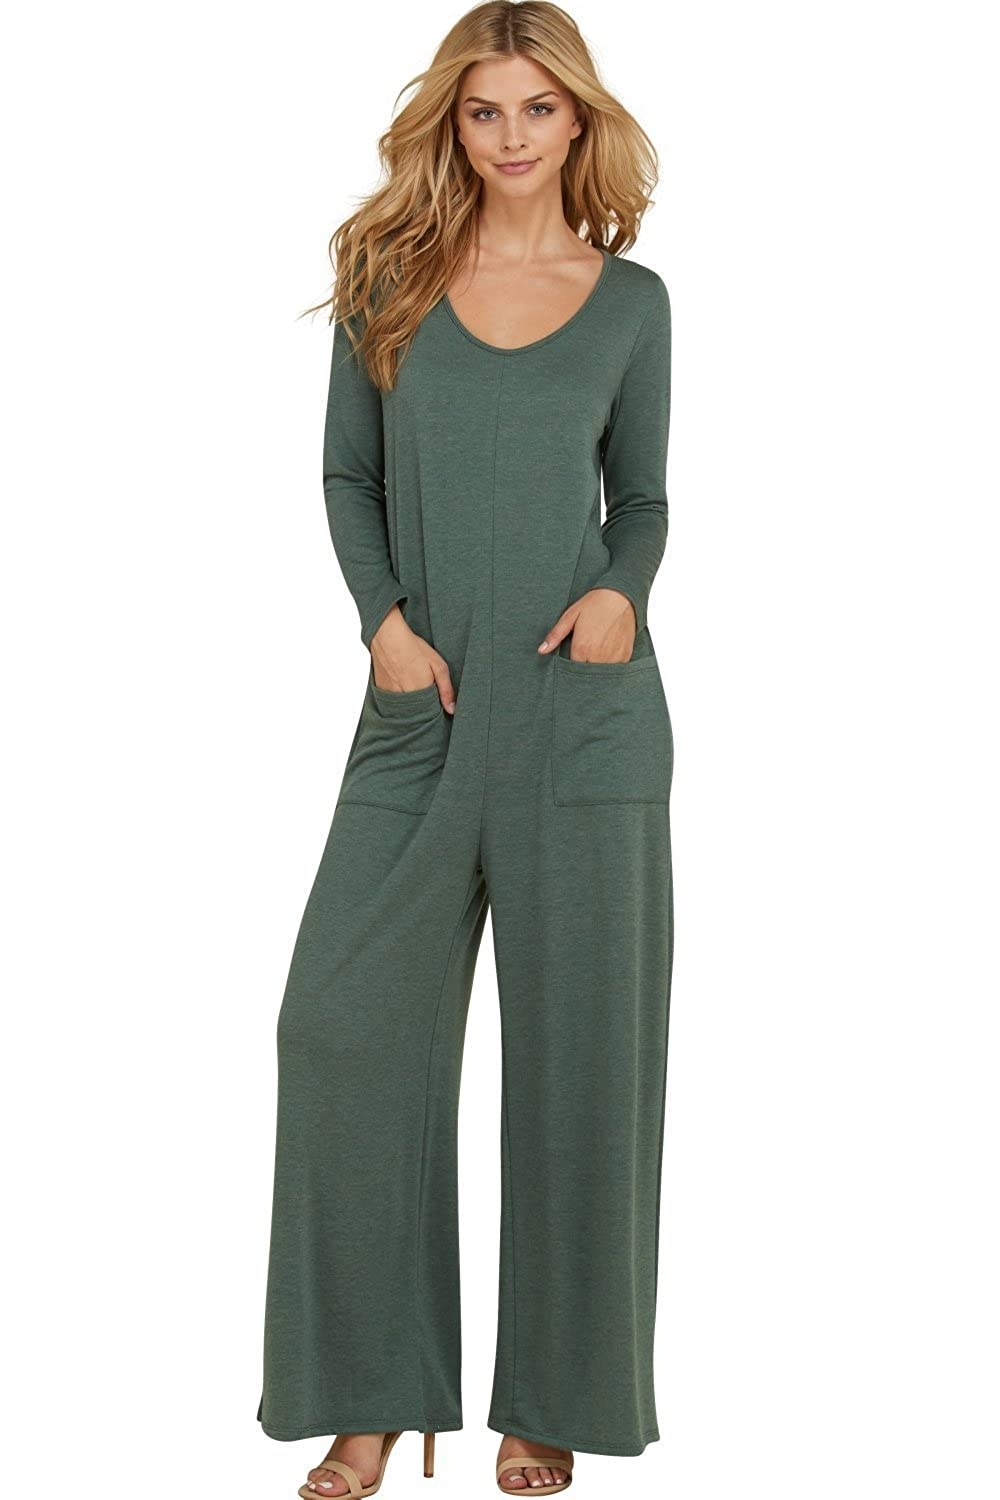 7c6ecfa1889f3 Amazon.com: Annabelle Women's Long Sleeve French Terry Wide Leg Pocket  Romper Jumpsuits S-3XL: Clothing